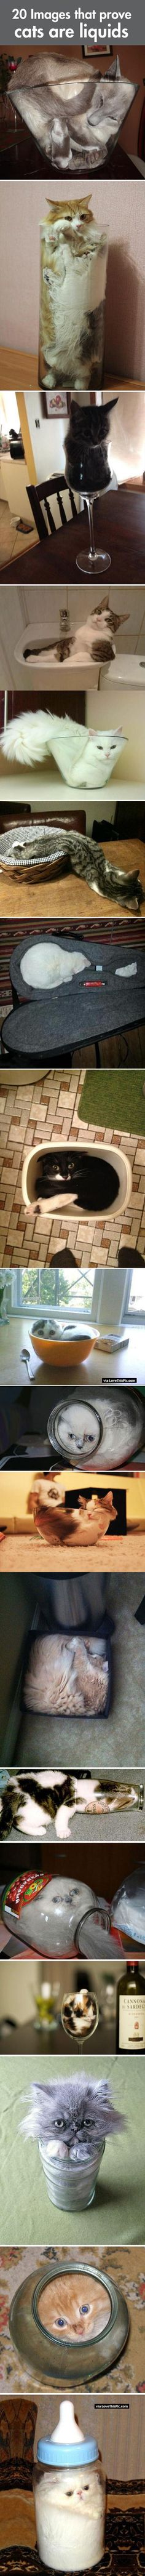 20 Images That Prove Cats Are Liquid Pictures, Photos, and Images for Facebook, Tumblr, Pinterest, and Twitter